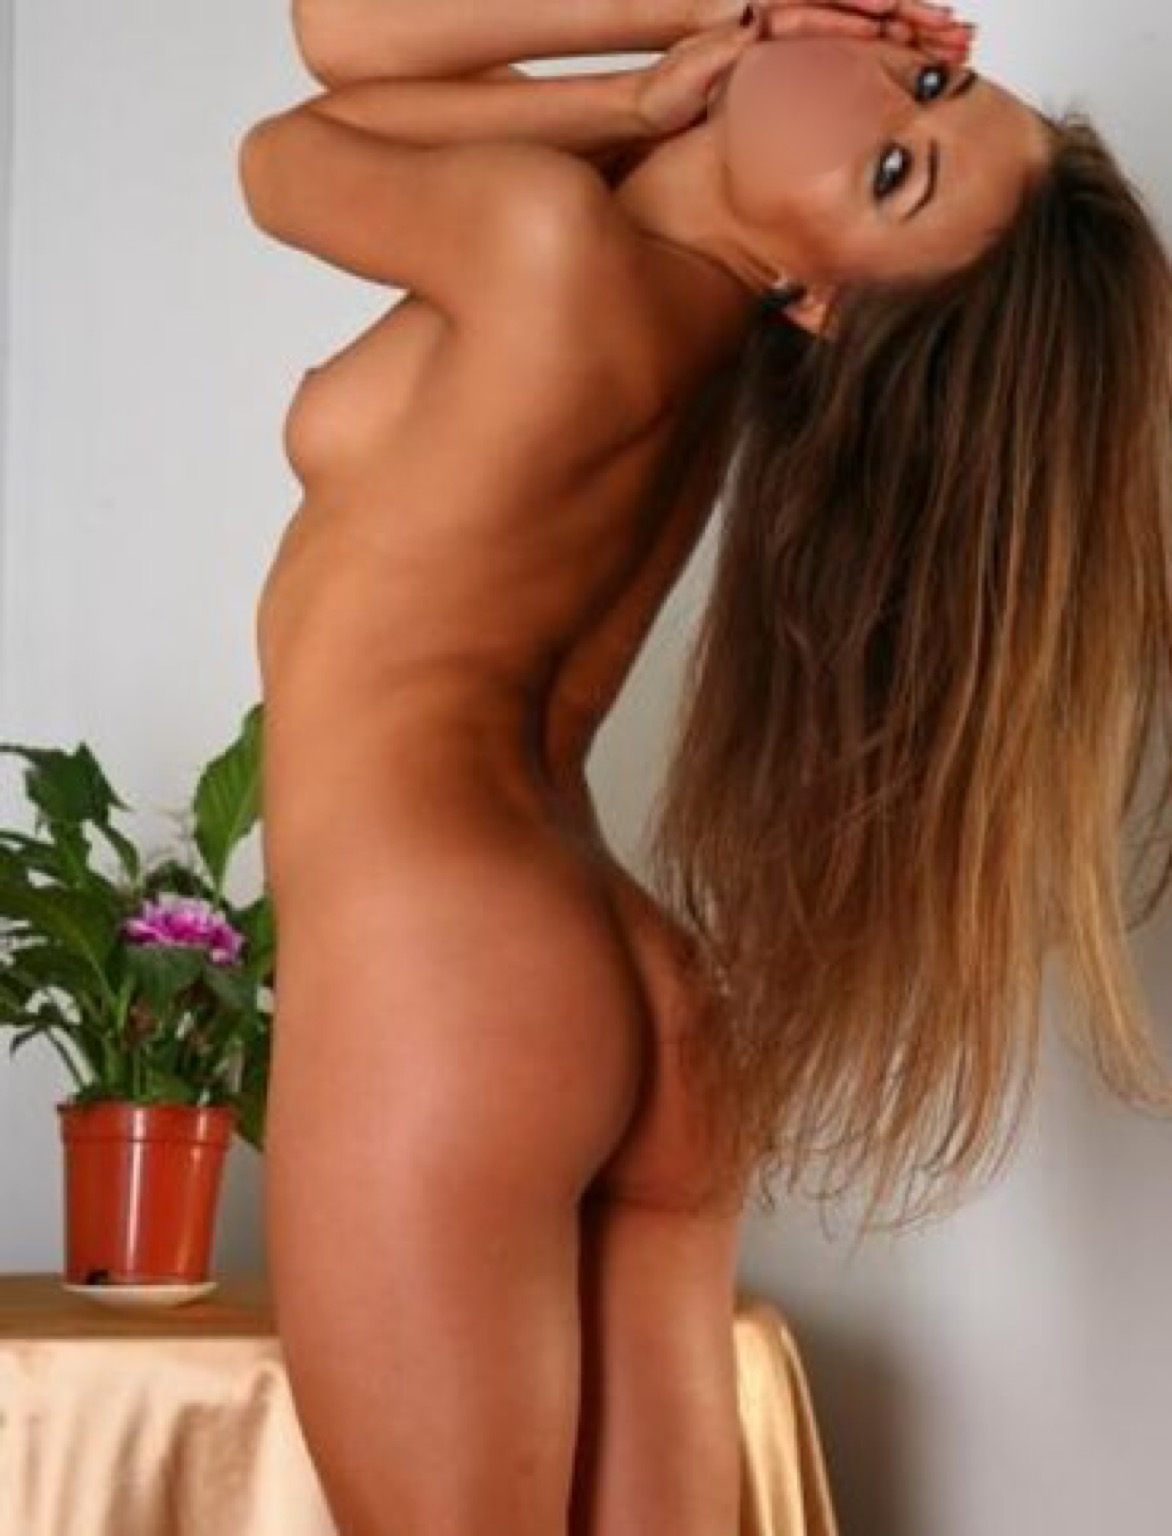 sofia bulgaria escorts